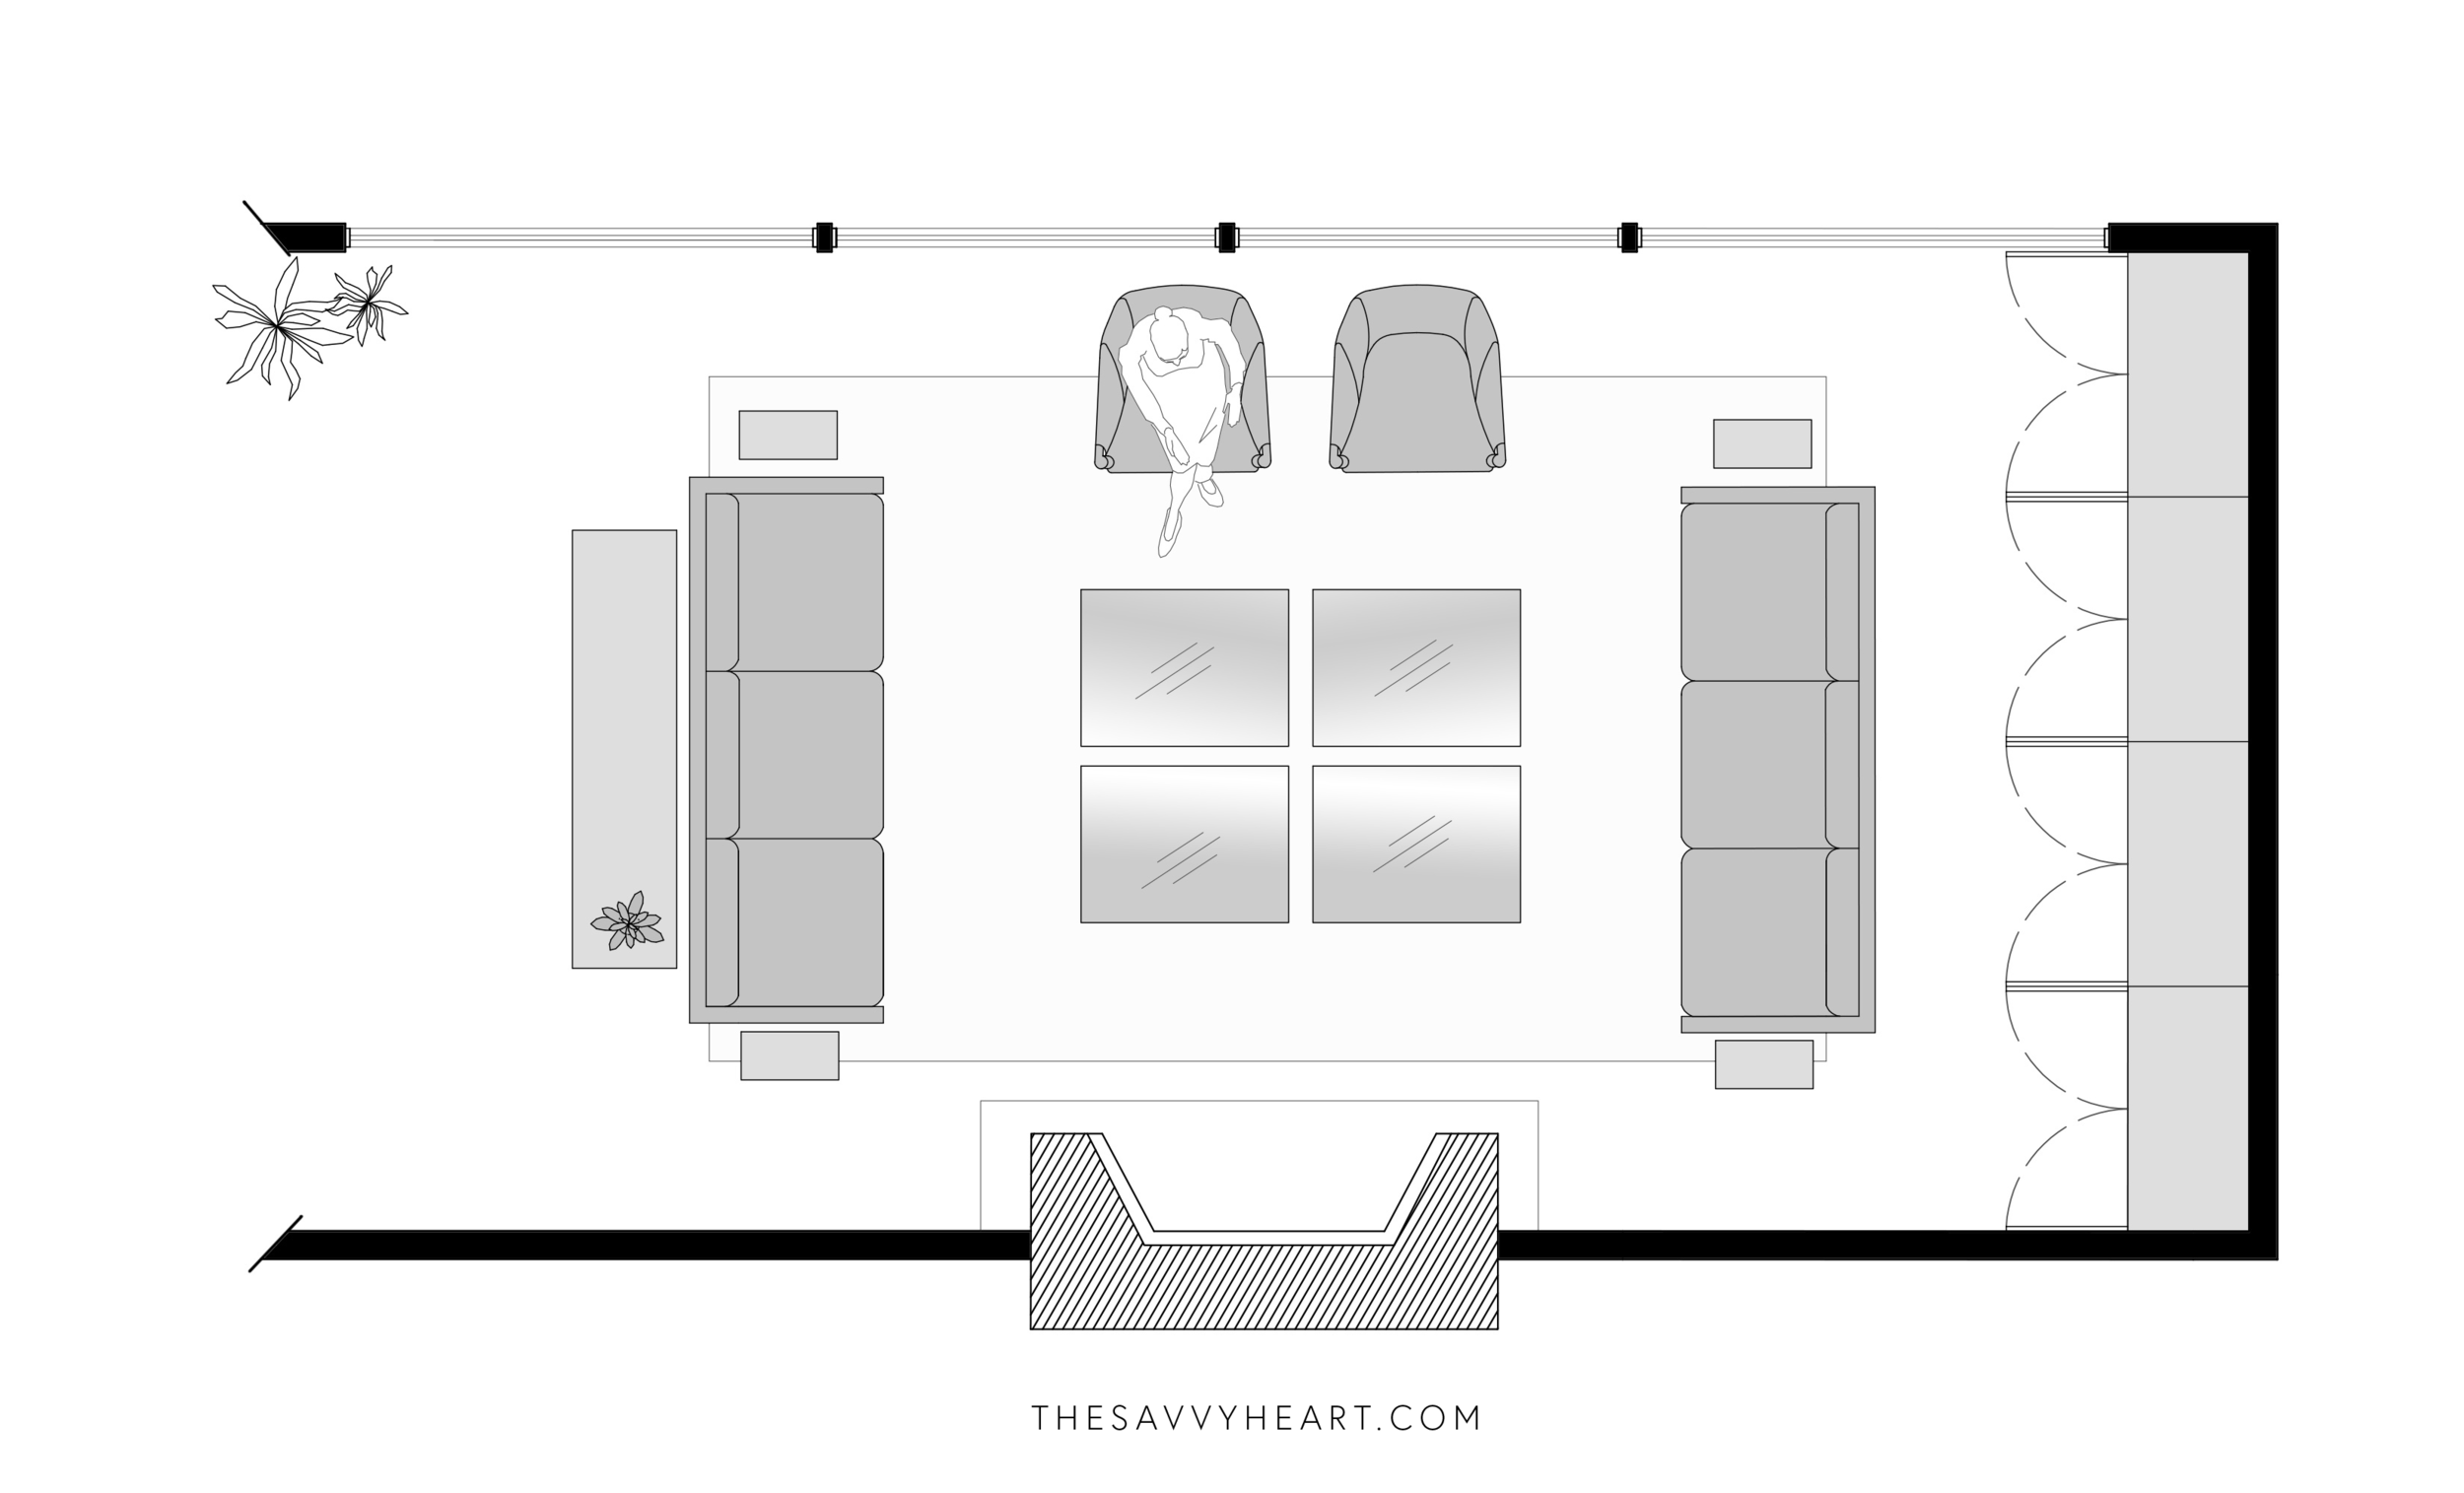 5 Furniture Layout Ideas For A Large Living Room With Floor Plans The Savvy Heart